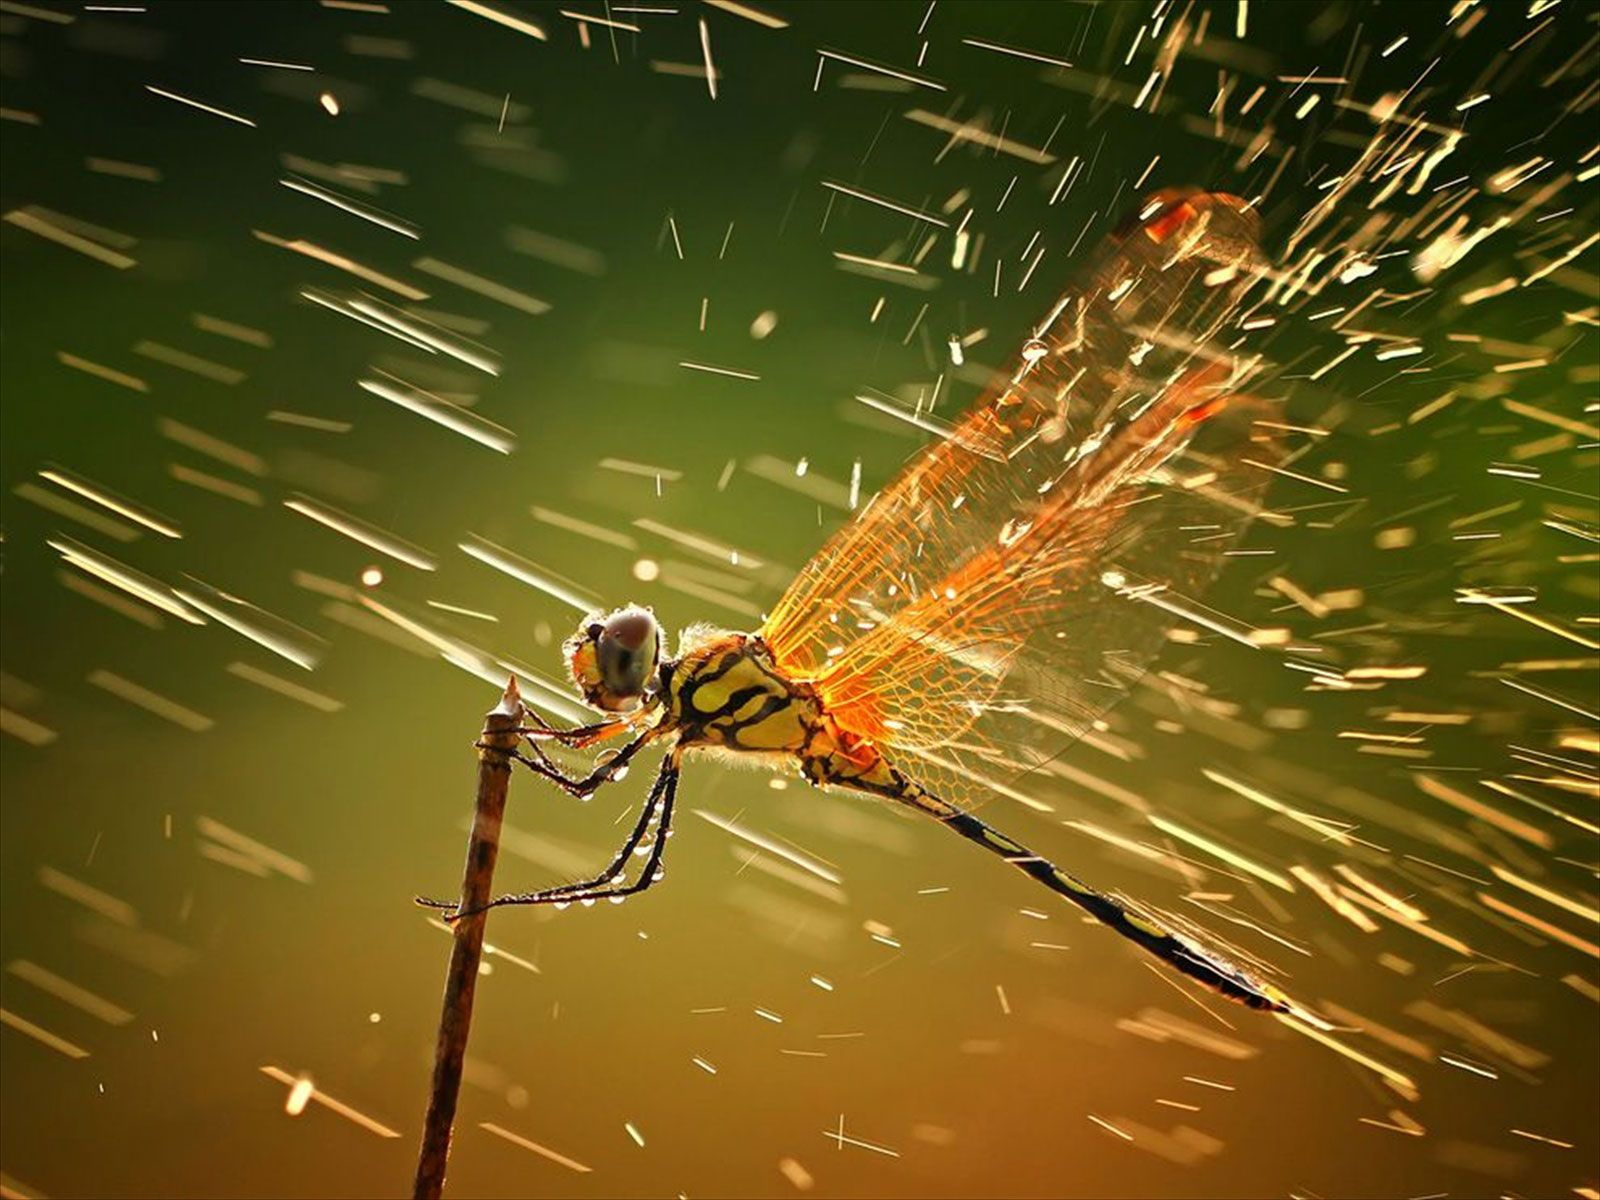 Dragonfly Wallpapers  Wallpaper  1600x1200